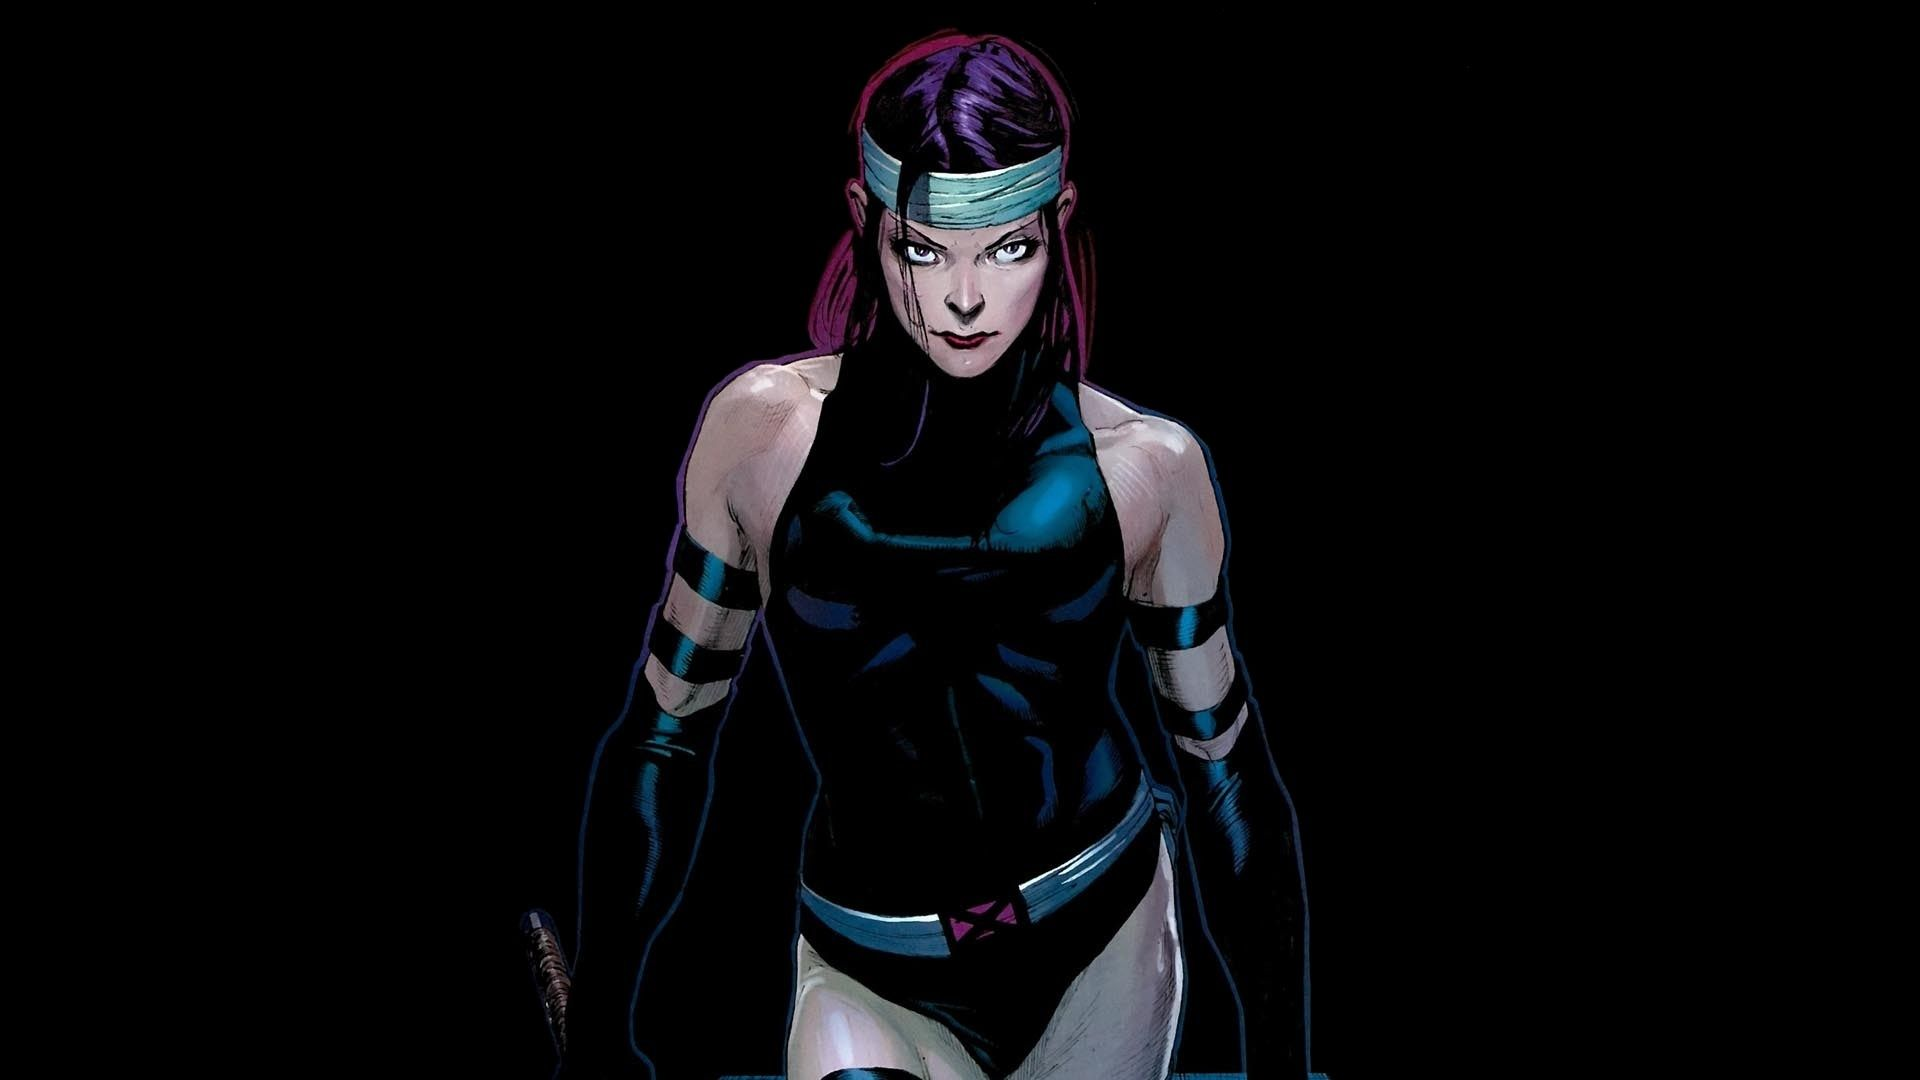 1920x1080 Wallpaper Desktop Psylocke